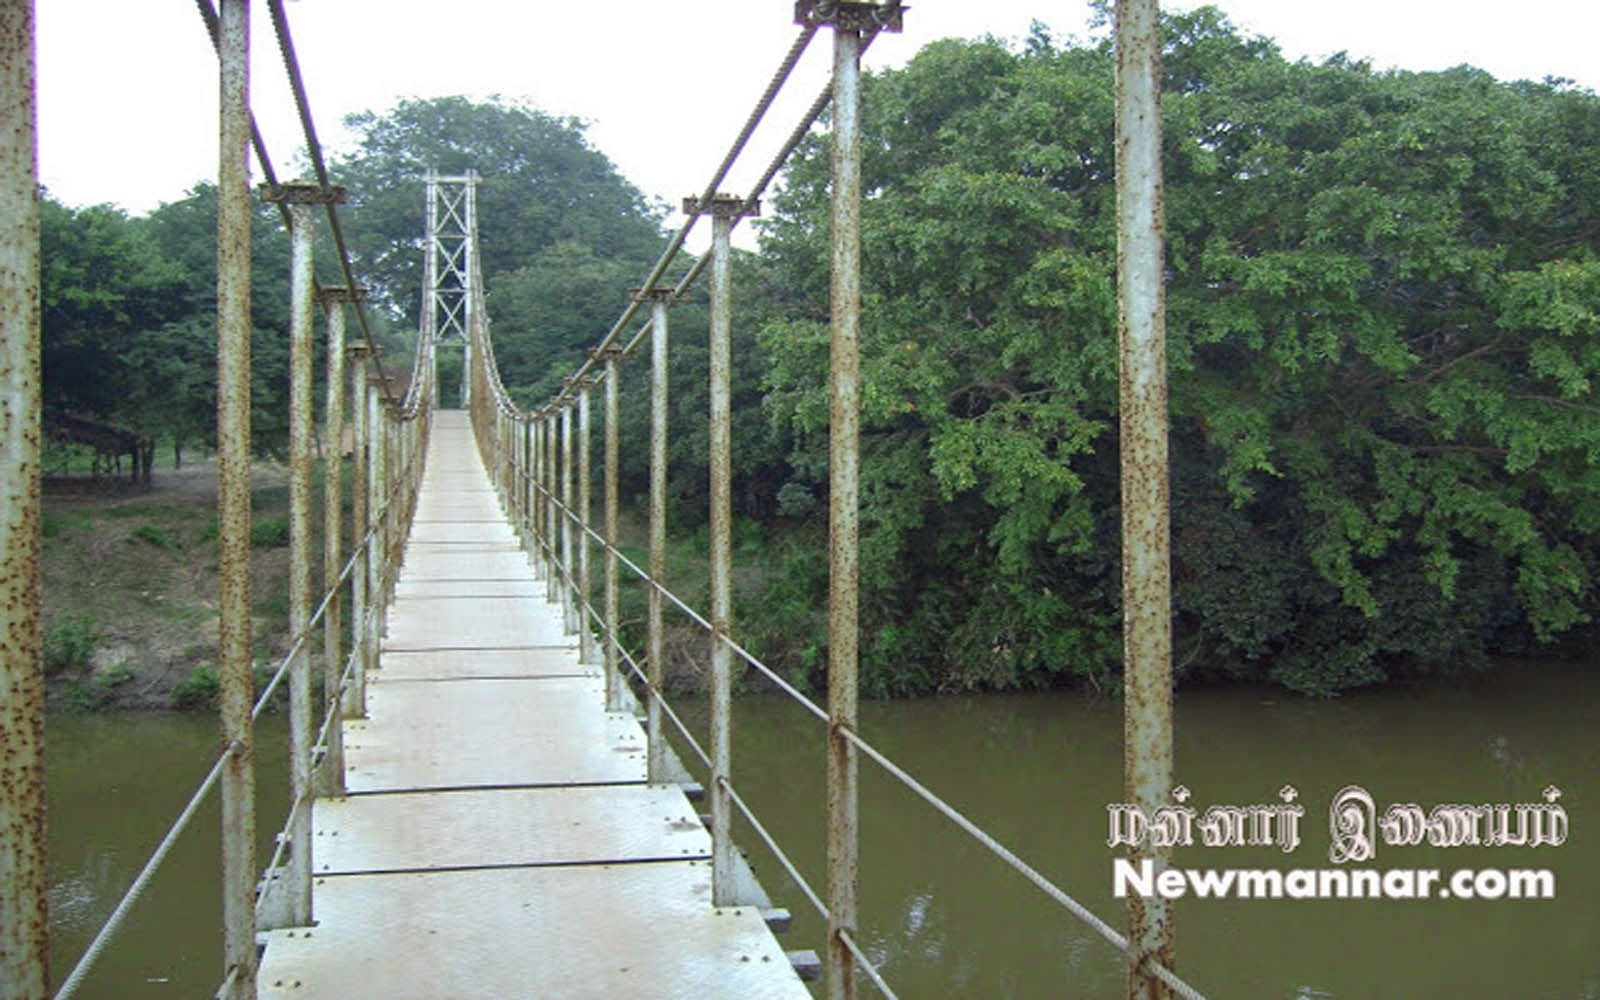 Mannar hanging bridge